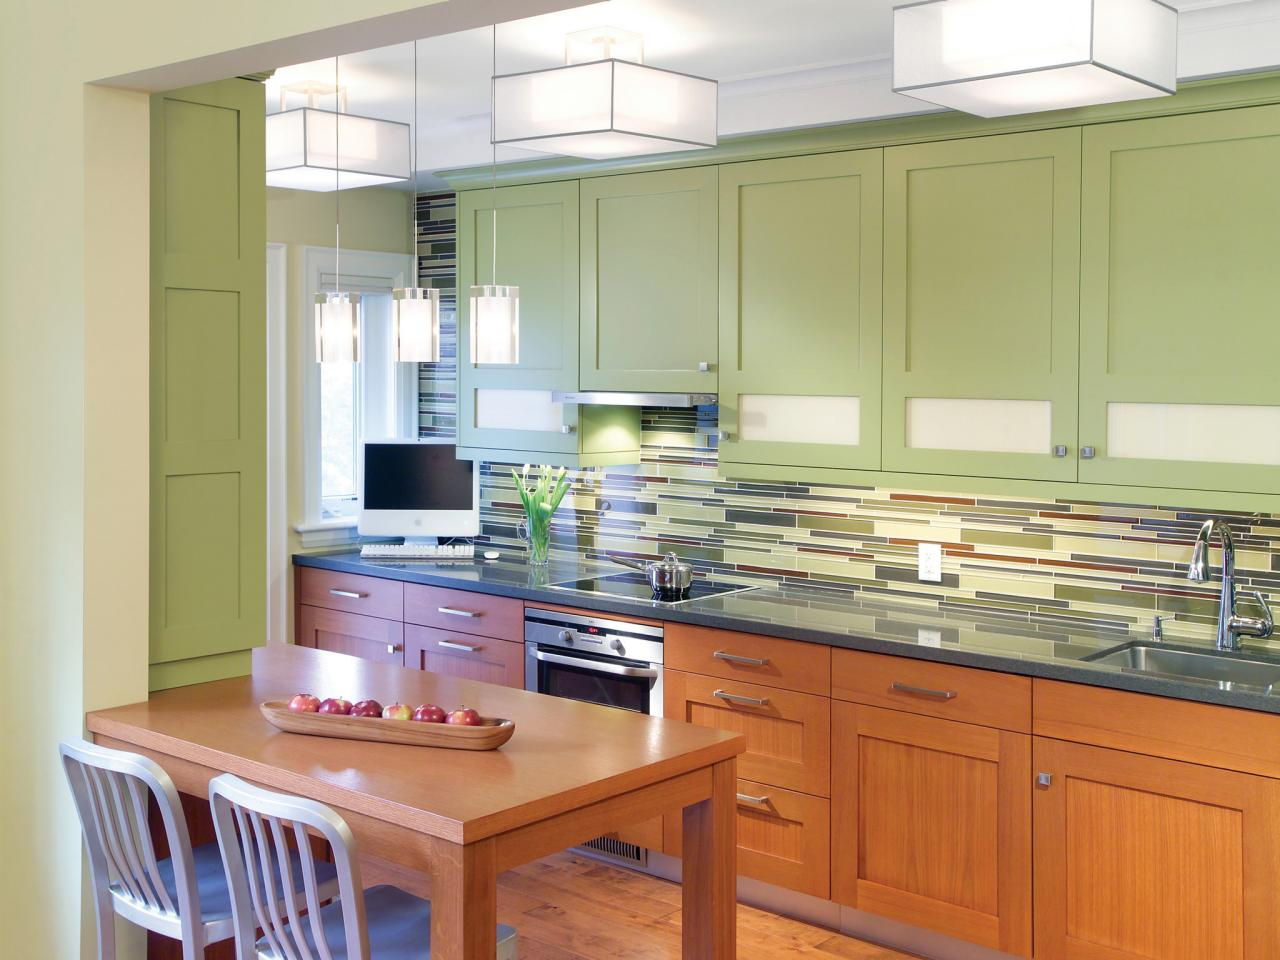 Painting kitchen cabinet ideas pictures tips from hgtv for Painting kitchen cabinets